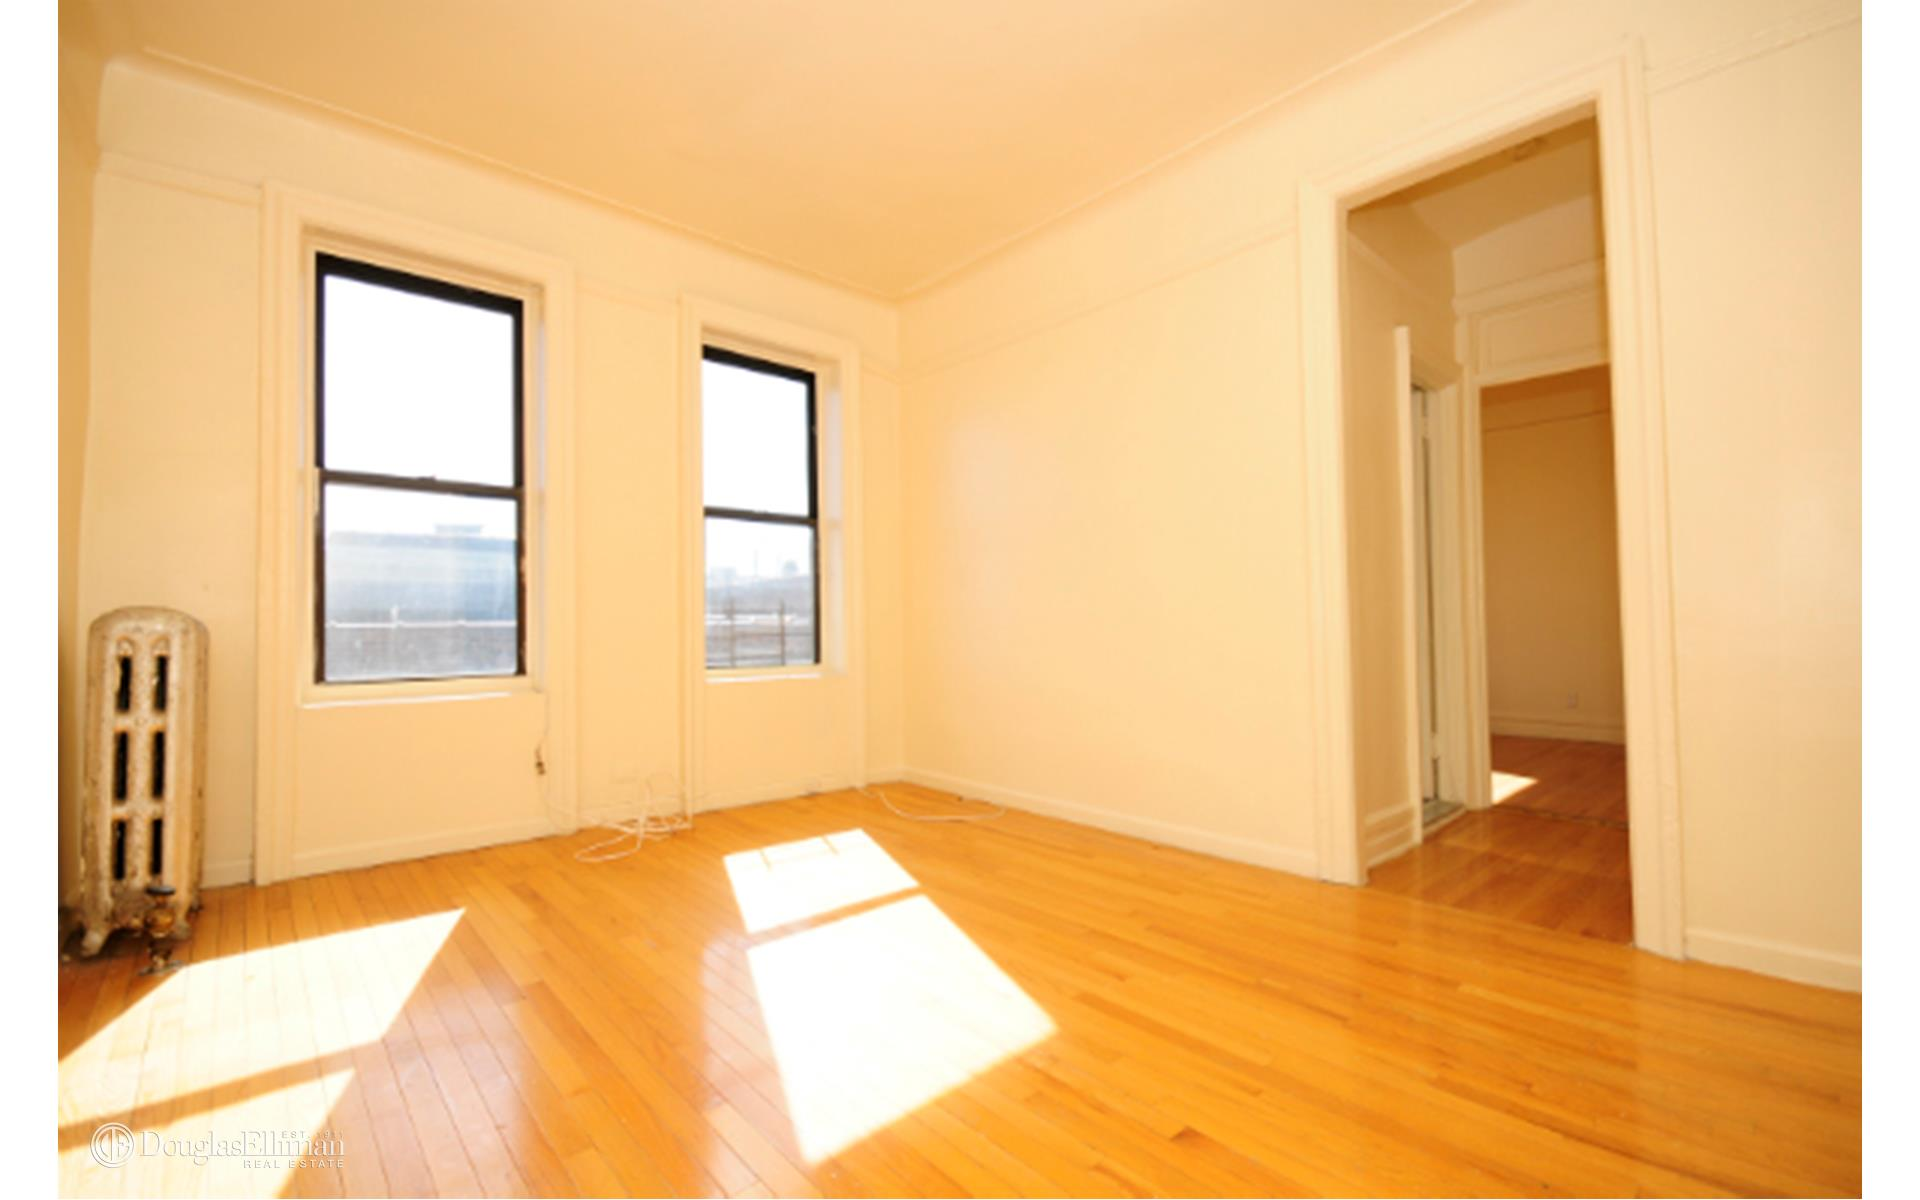 Inwood 1 bedroom rental at 38 48 sickles st new york ny - Average pg e bill for 3 bedroom house ...